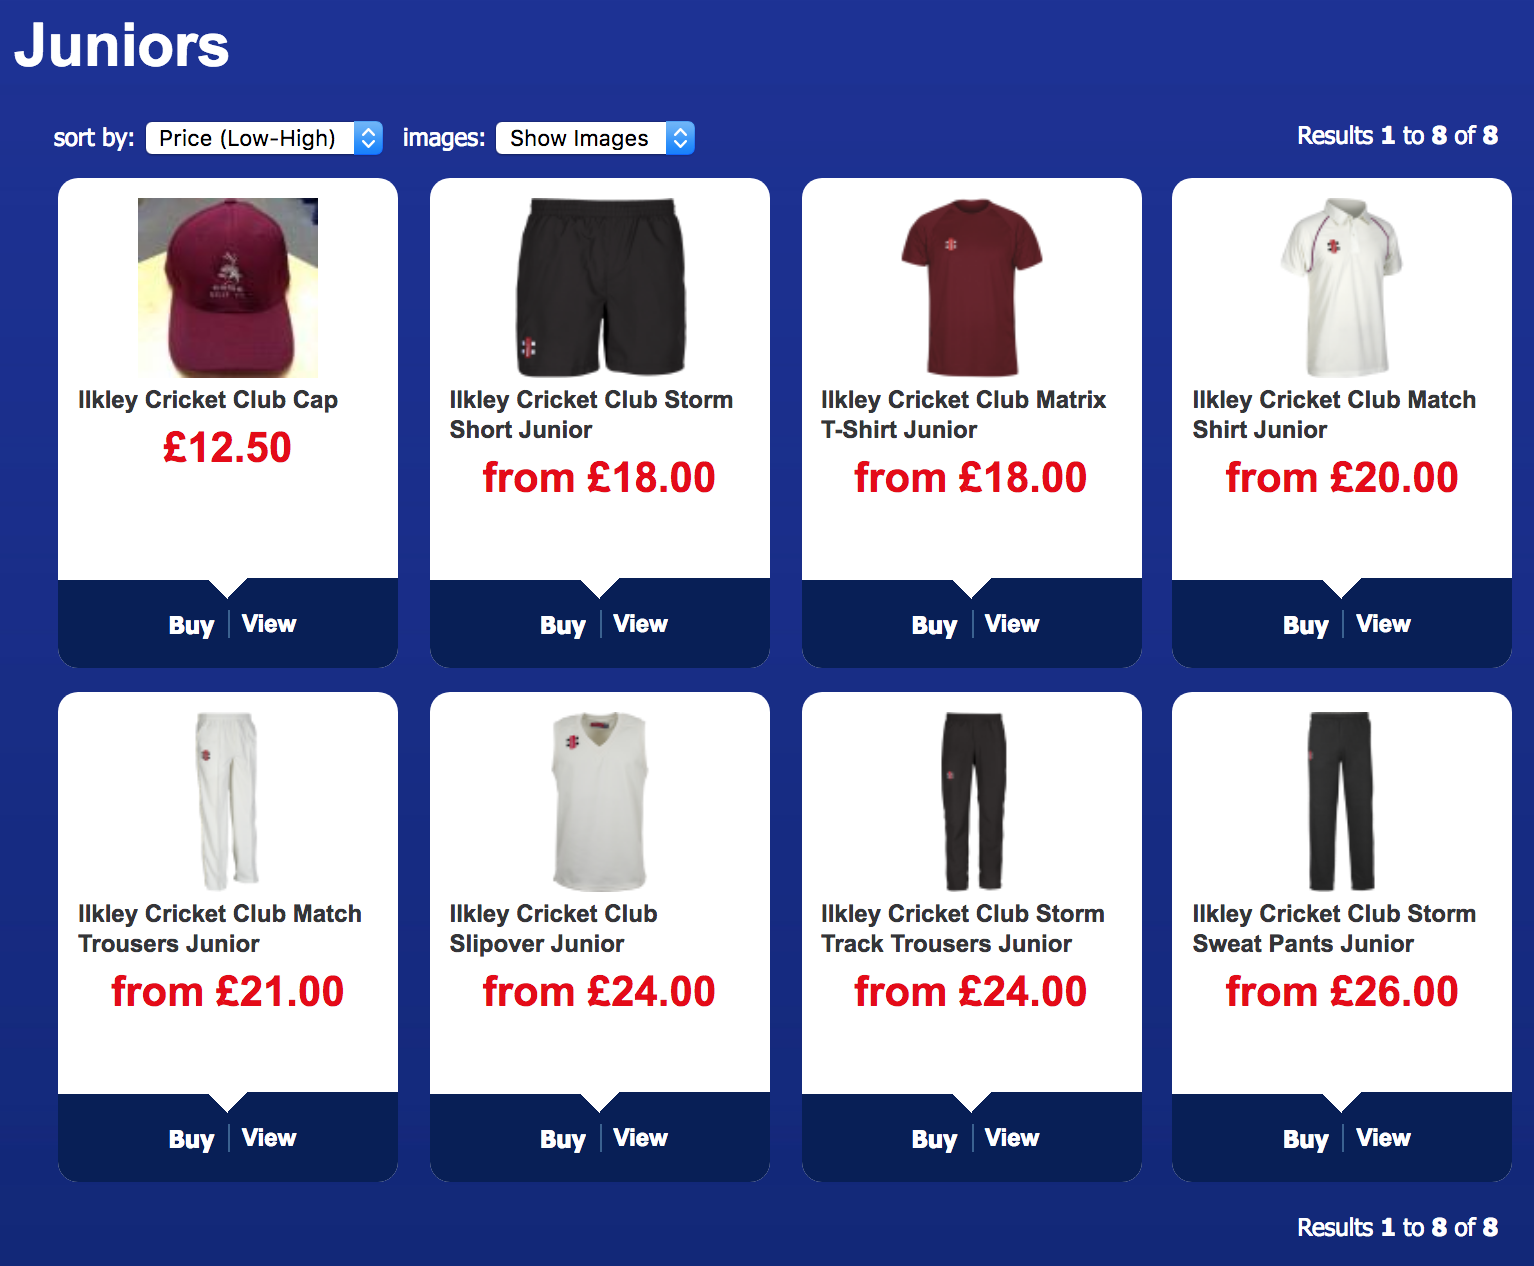 Click the image to browse the full range of Ilkley Cricket Club Kit for the 2018 season.